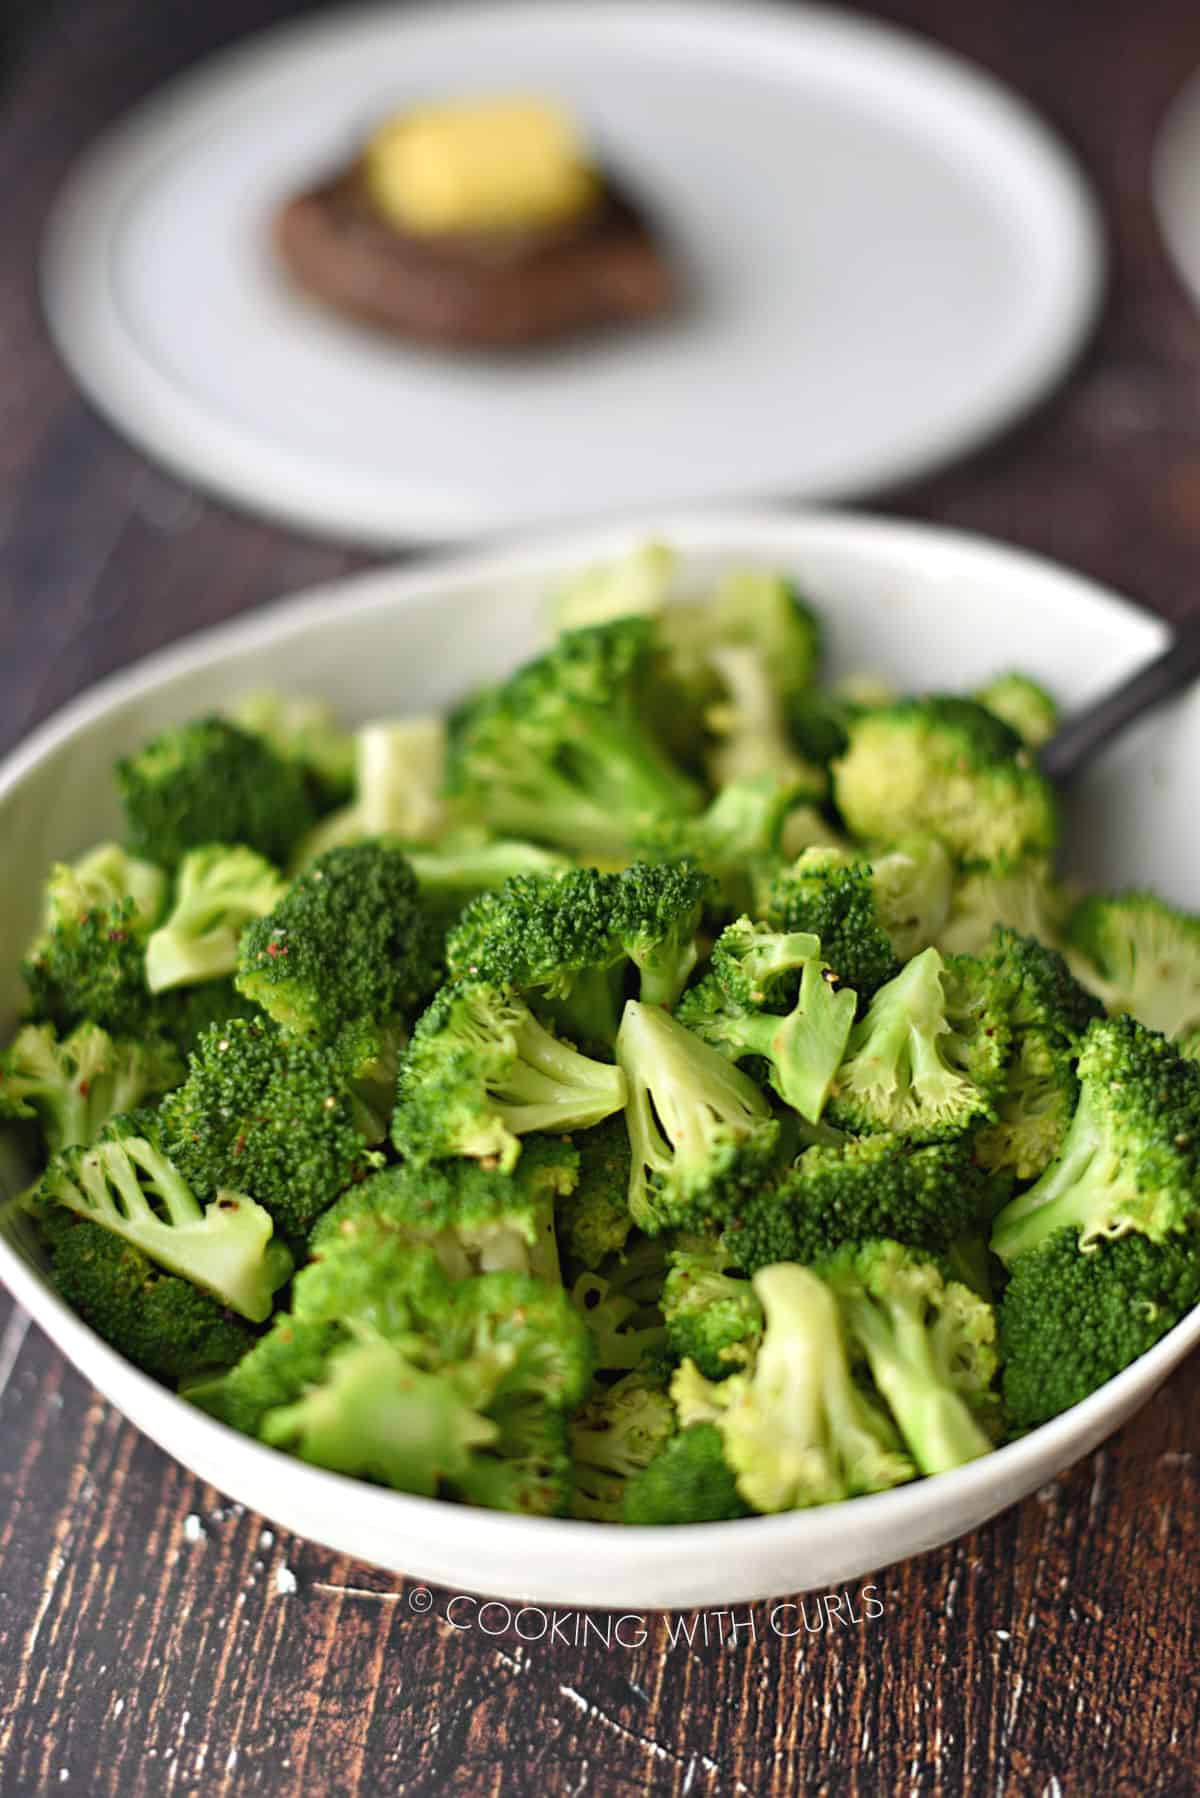 a large white bowl filled with steamed fresh broccoli florets with a white plate topped with a steak in the background.